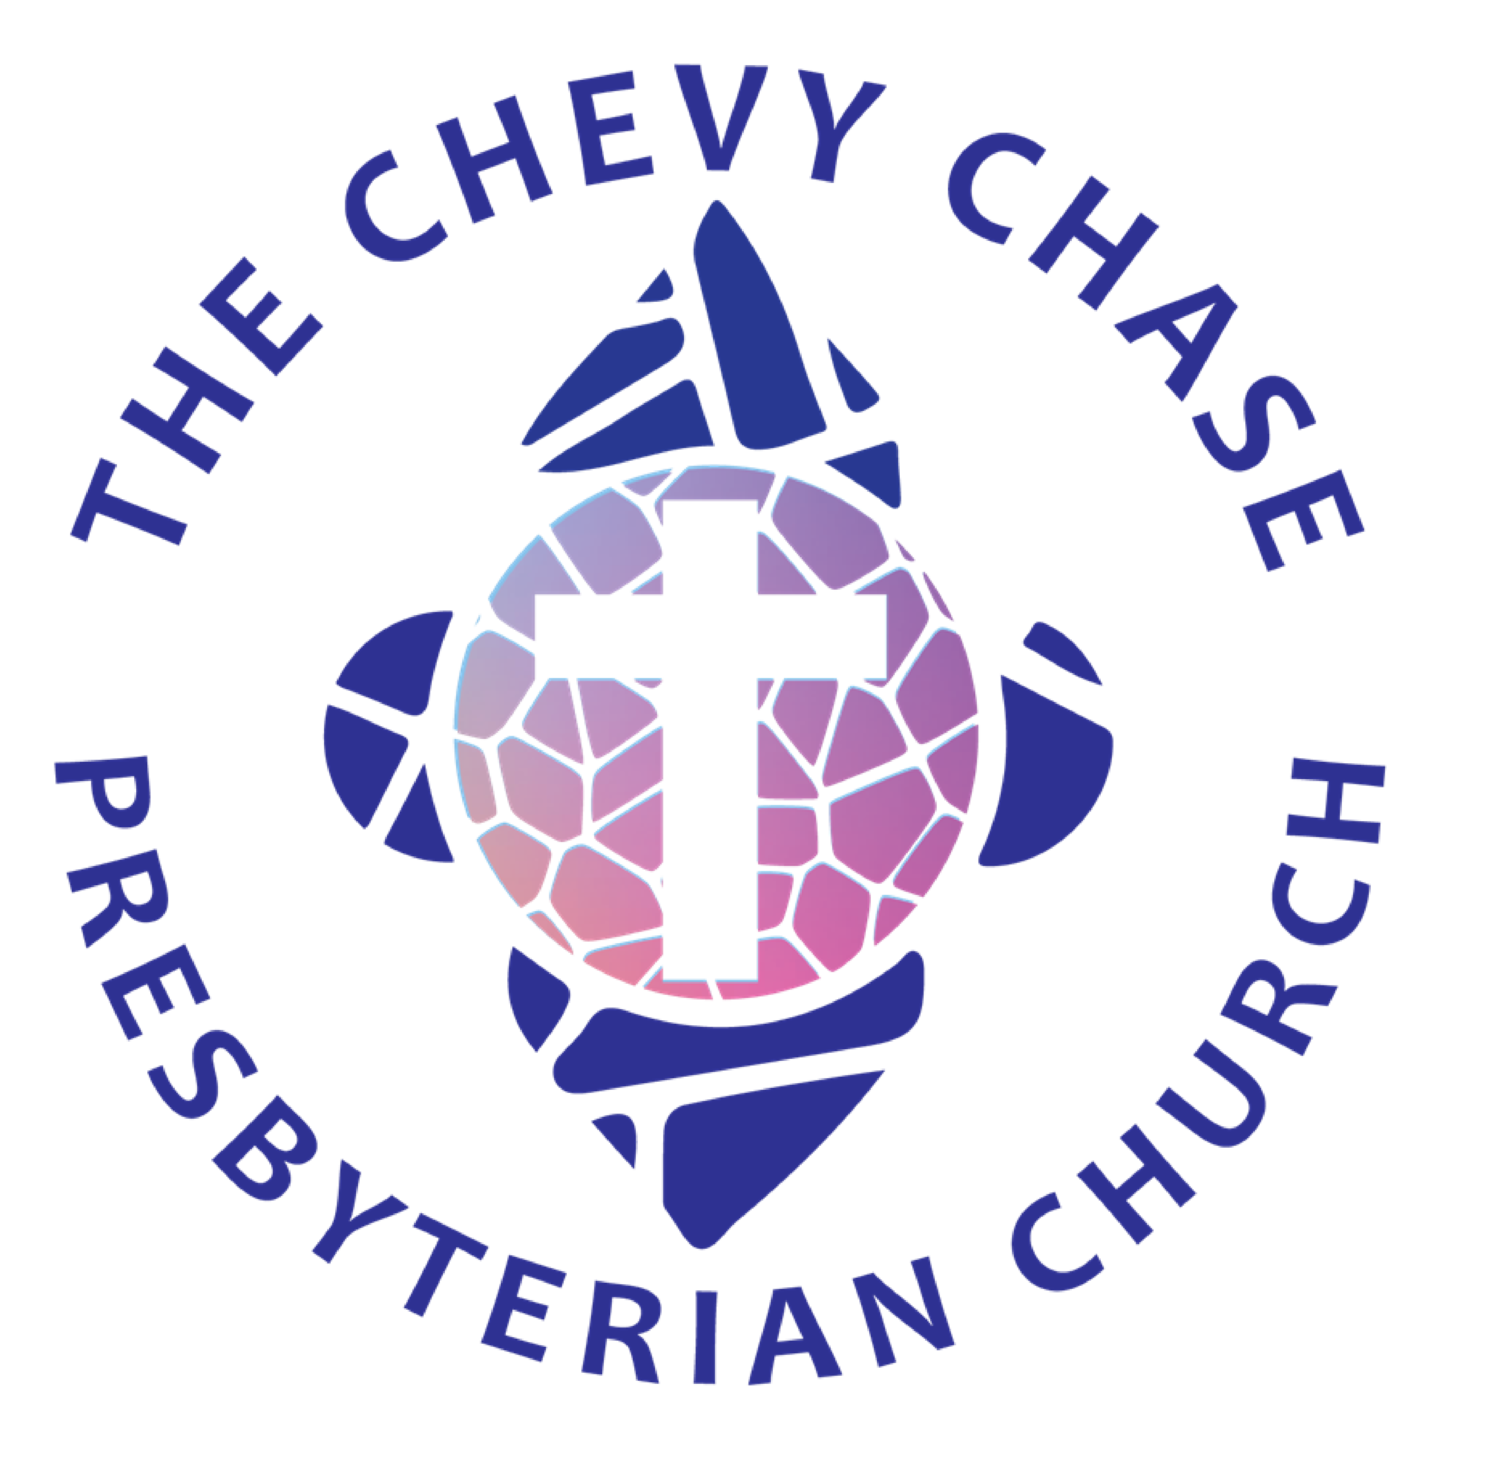 The Chevy Chase Presbyterian Church